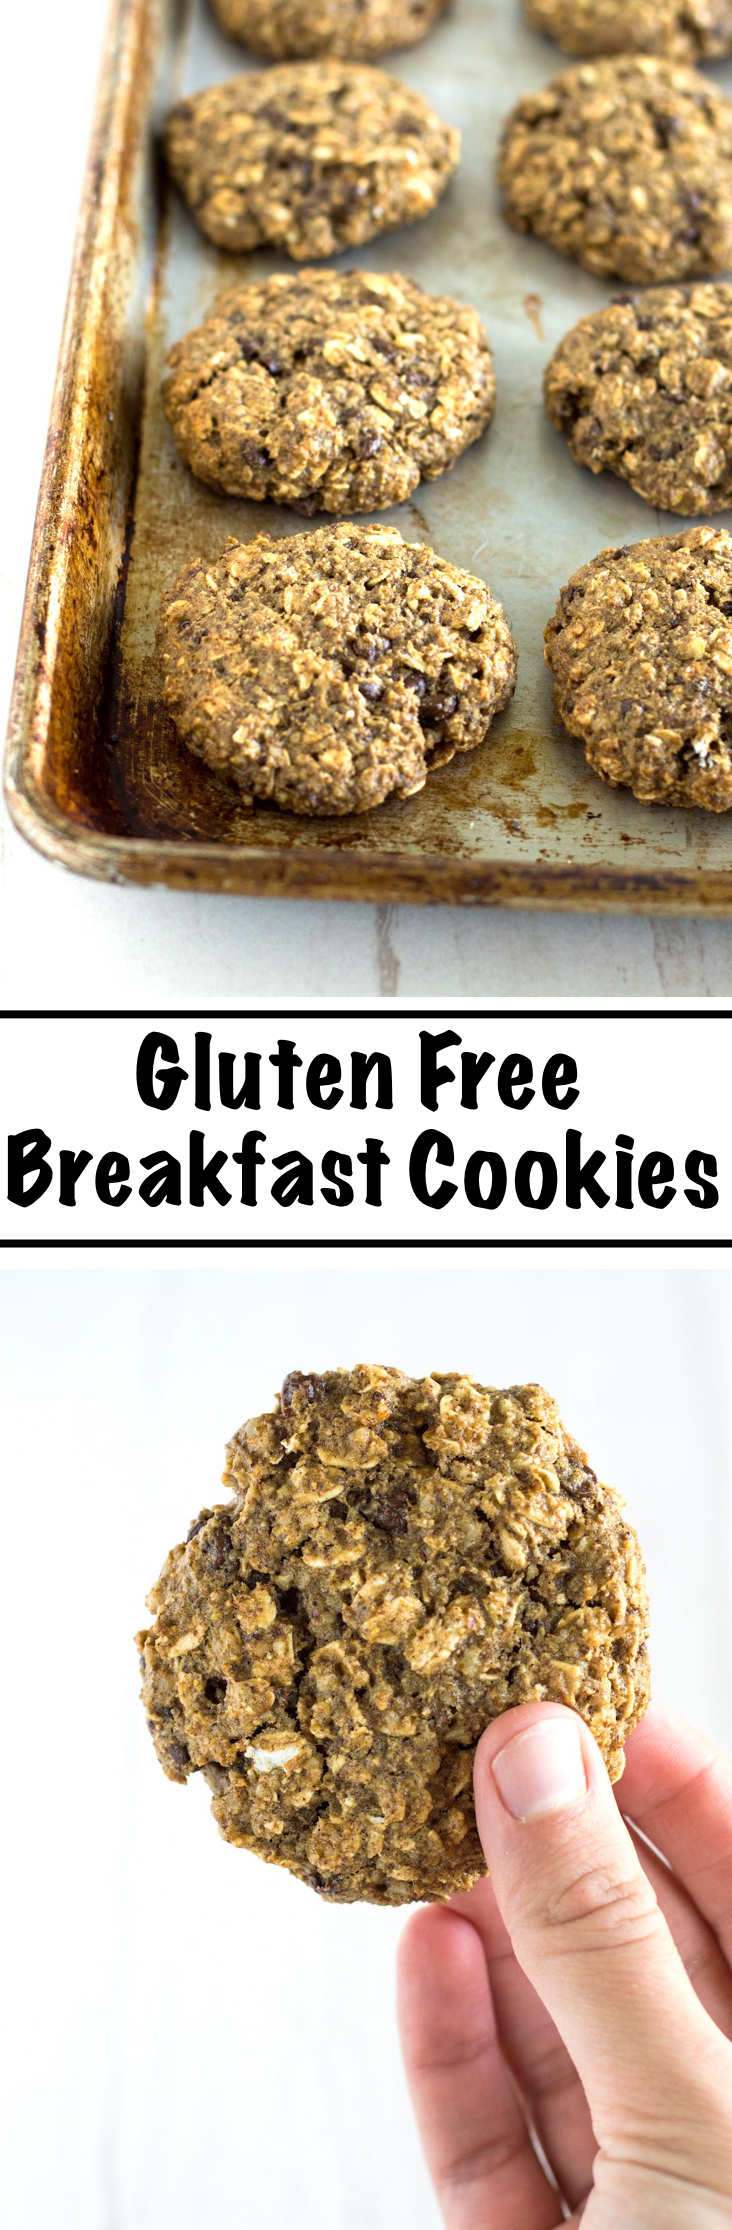 The perfect start to a busy day to give you the energy you need. Gluten Free Breakfast Cookies are soft yet hearty and packed with good things like oats, walnuts, flax and chocolate.   nourishedtheblog.com   Gluten Free Breakfast Cookies